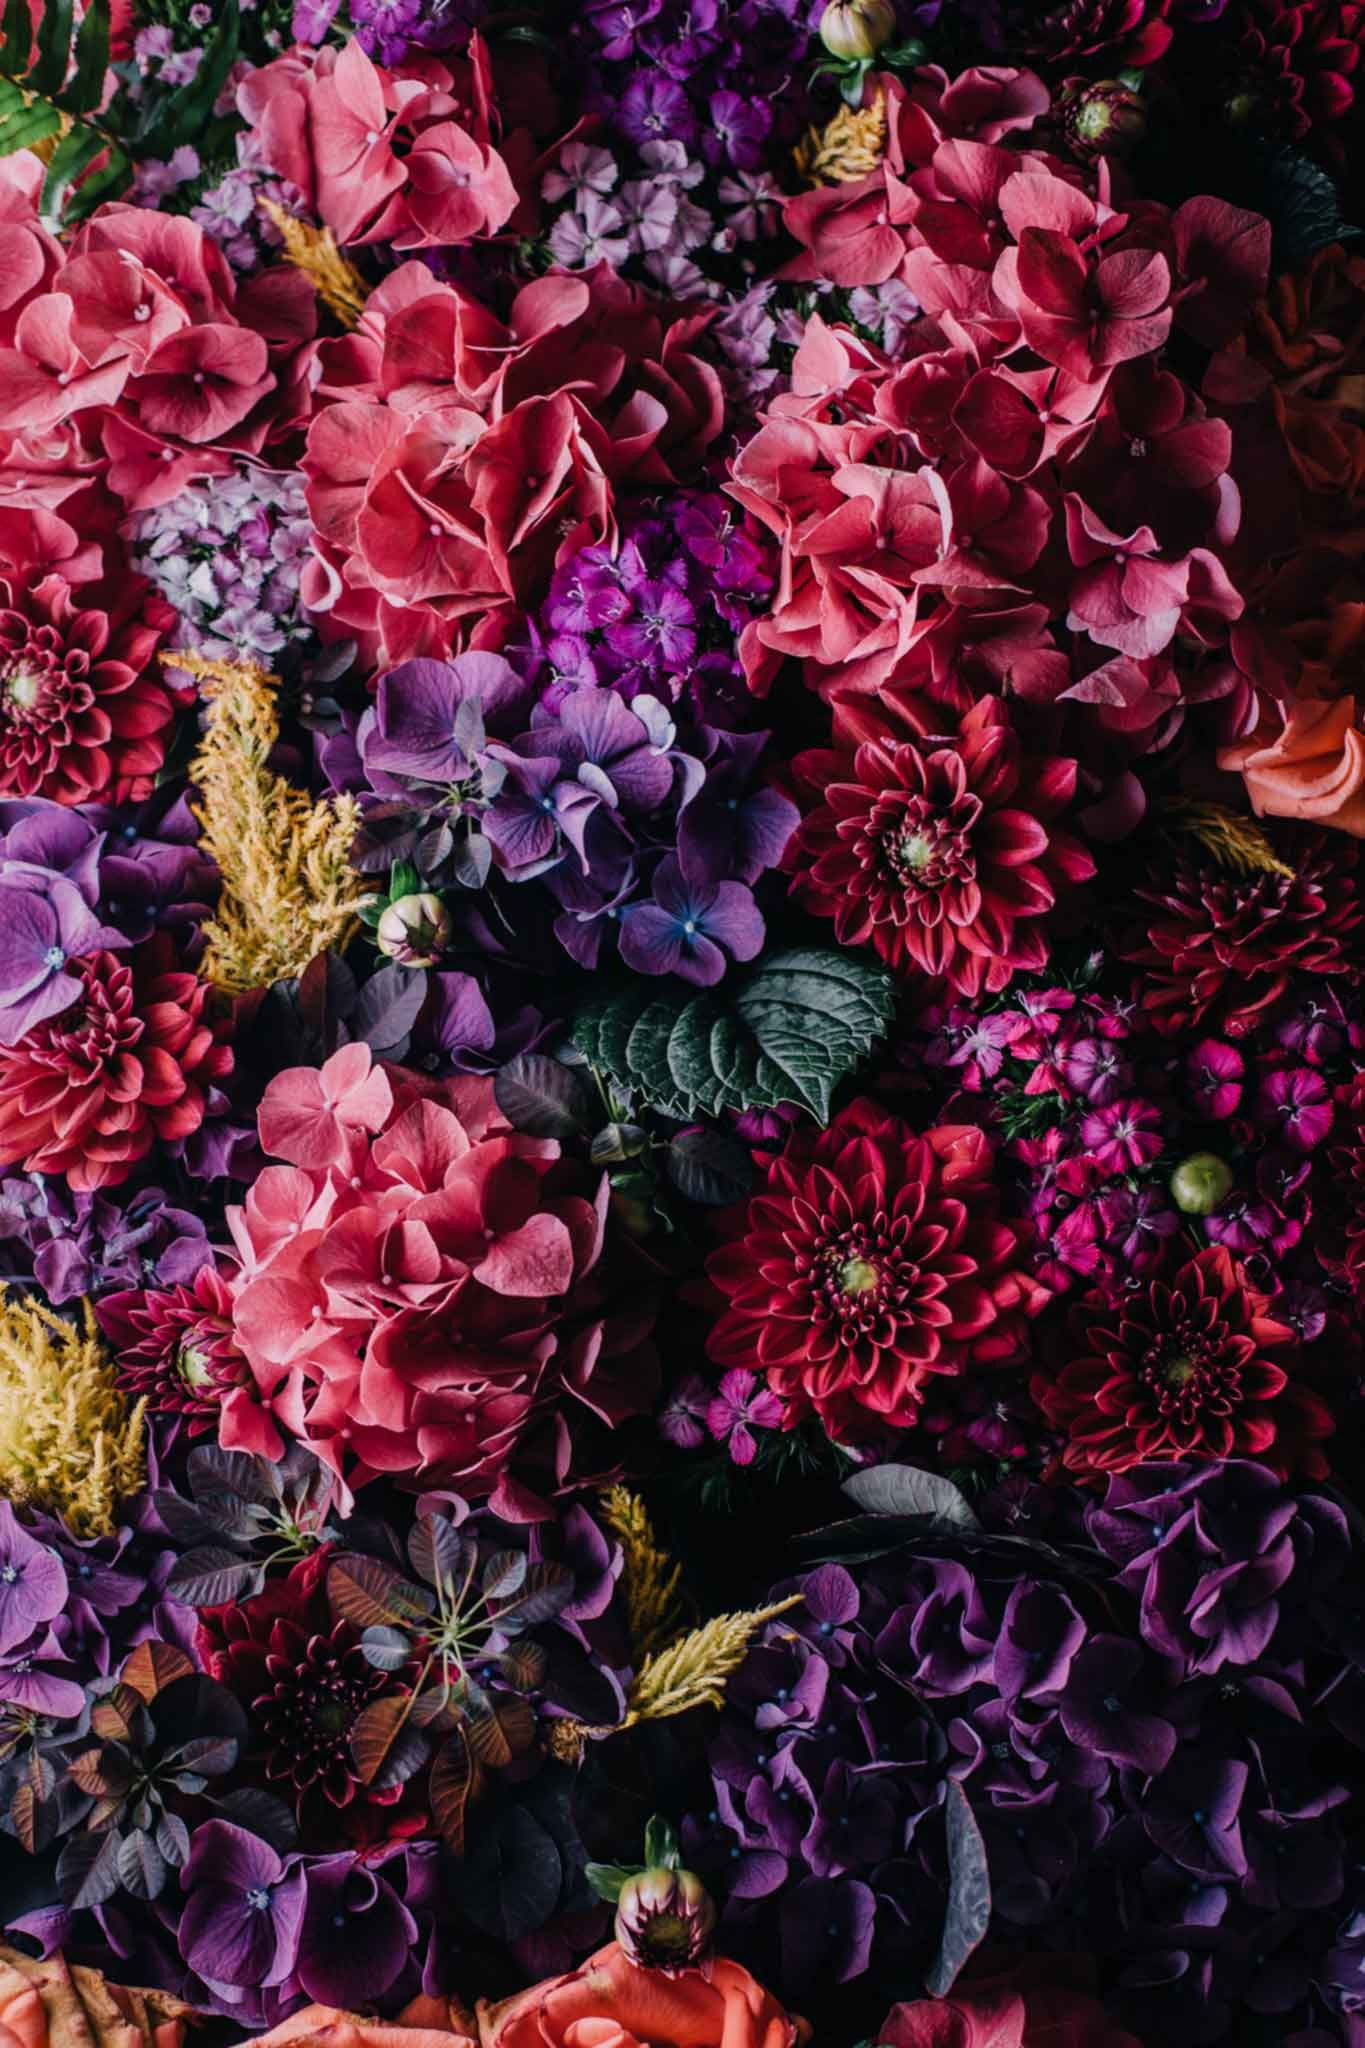 A large bouquet of red, pink, and purple flowers - Highly optimised image at original size